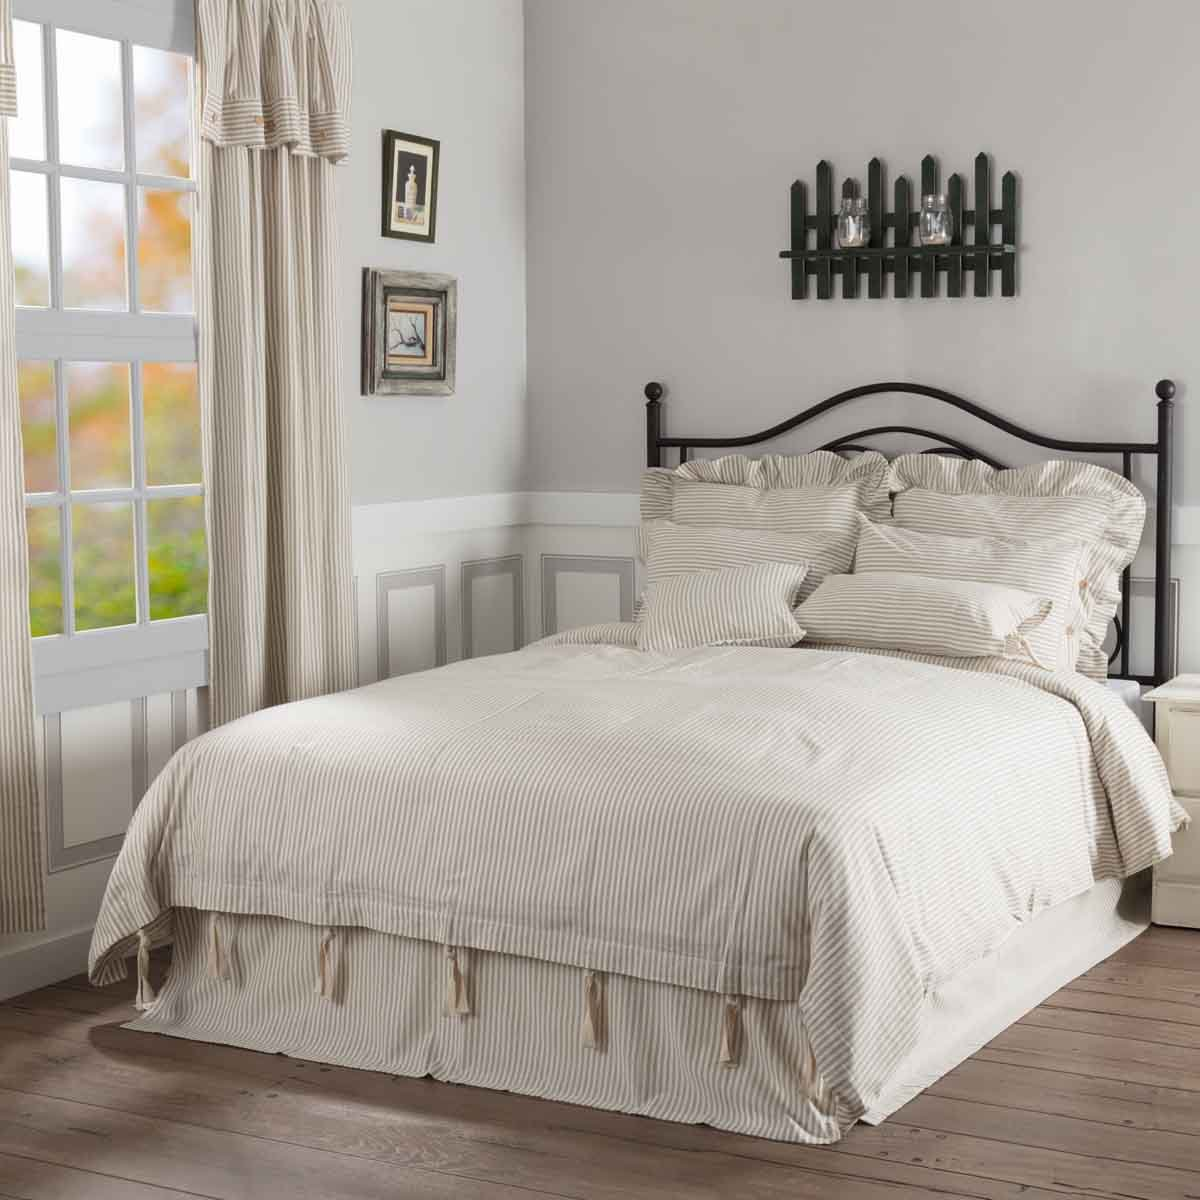 Piper Classics Farmhouse Ticking Stripe Duvet Cover, Beige Taupe & Off-White, King 92x108, Comforter Cover w/Twill Ties, Soft Comfortable Farmhouse Bedroom Decor